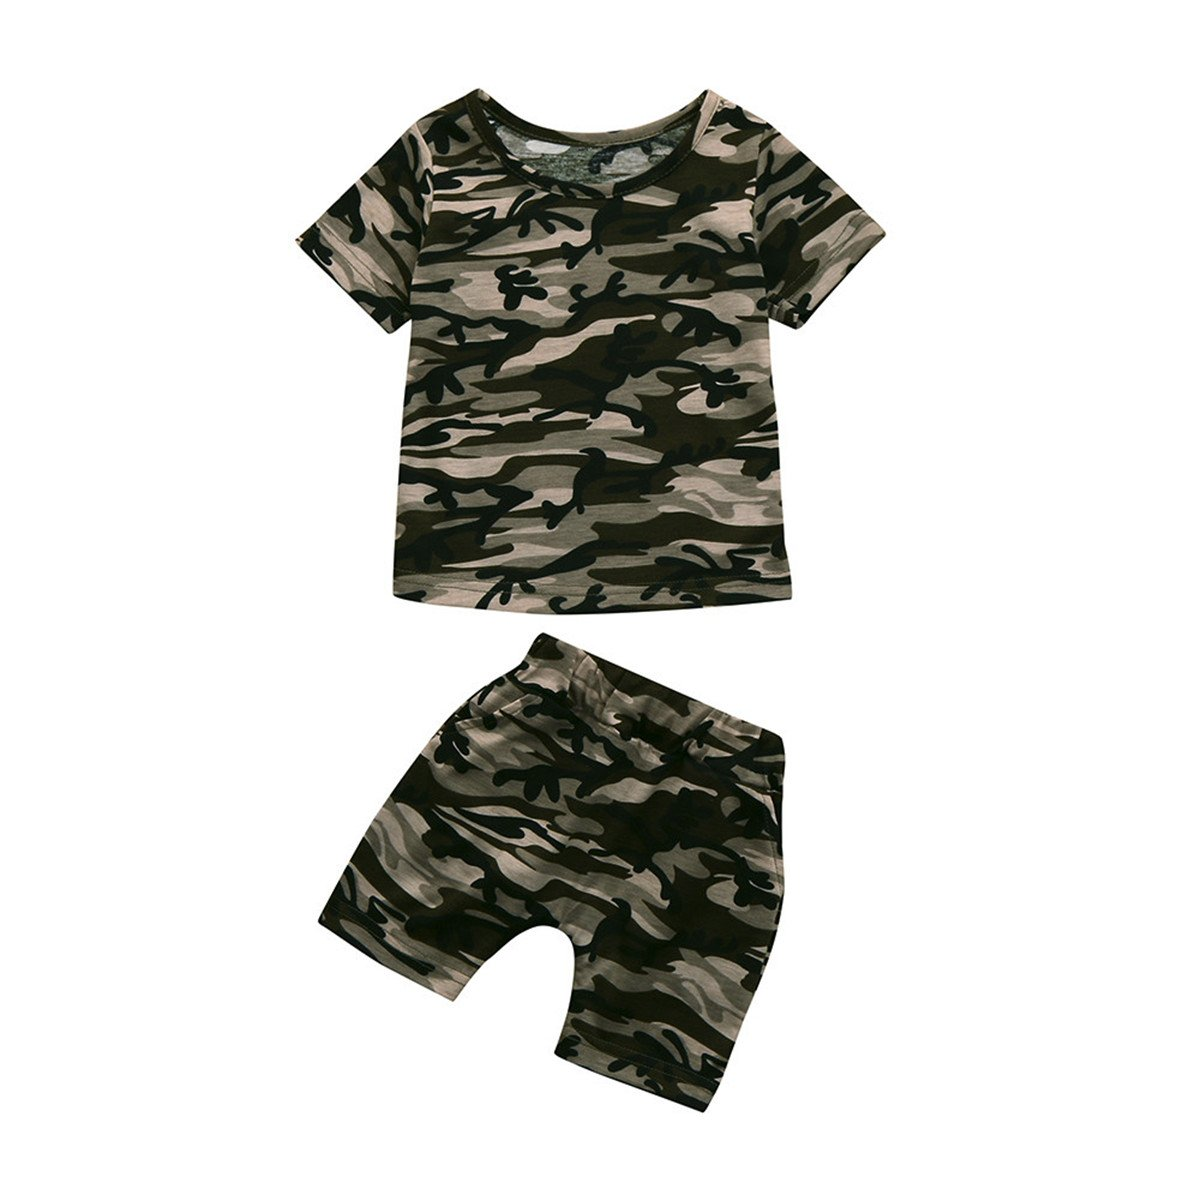 Bellelove Fashion Baby Summer Clothes Sets, Infant Toddler Baby Kids Boys Camouflage T Shirt Tops+Shorts Outfits Clothes Set for 1-4 Years Old